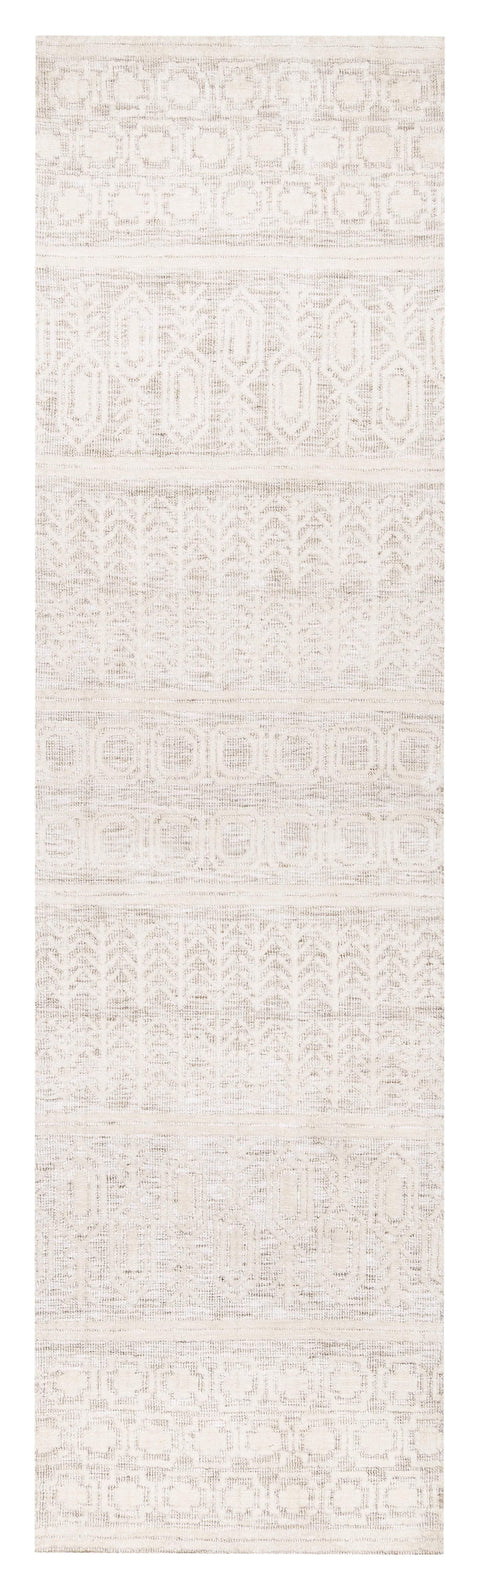 Delphine Ivory and Beige Tribal Transitional Runner Rug